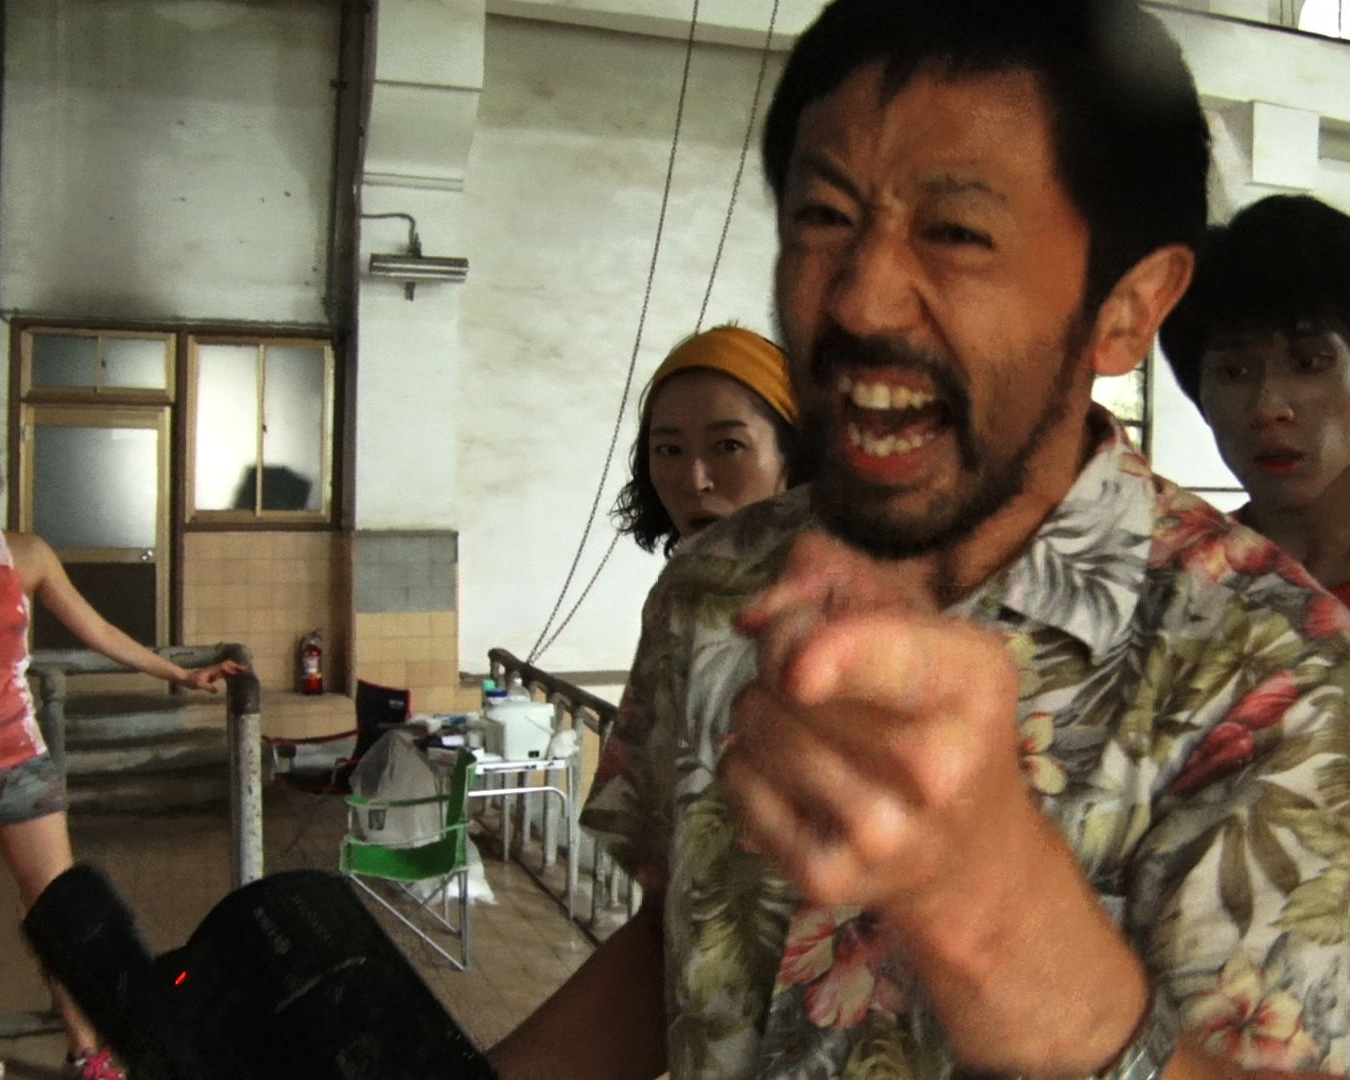 One Cut of the DEad - Things go badly for a hack director and film crew shooting a low budget zombie movie in an abandoned WWII Japanese facility, when they are attacked by real zombies.